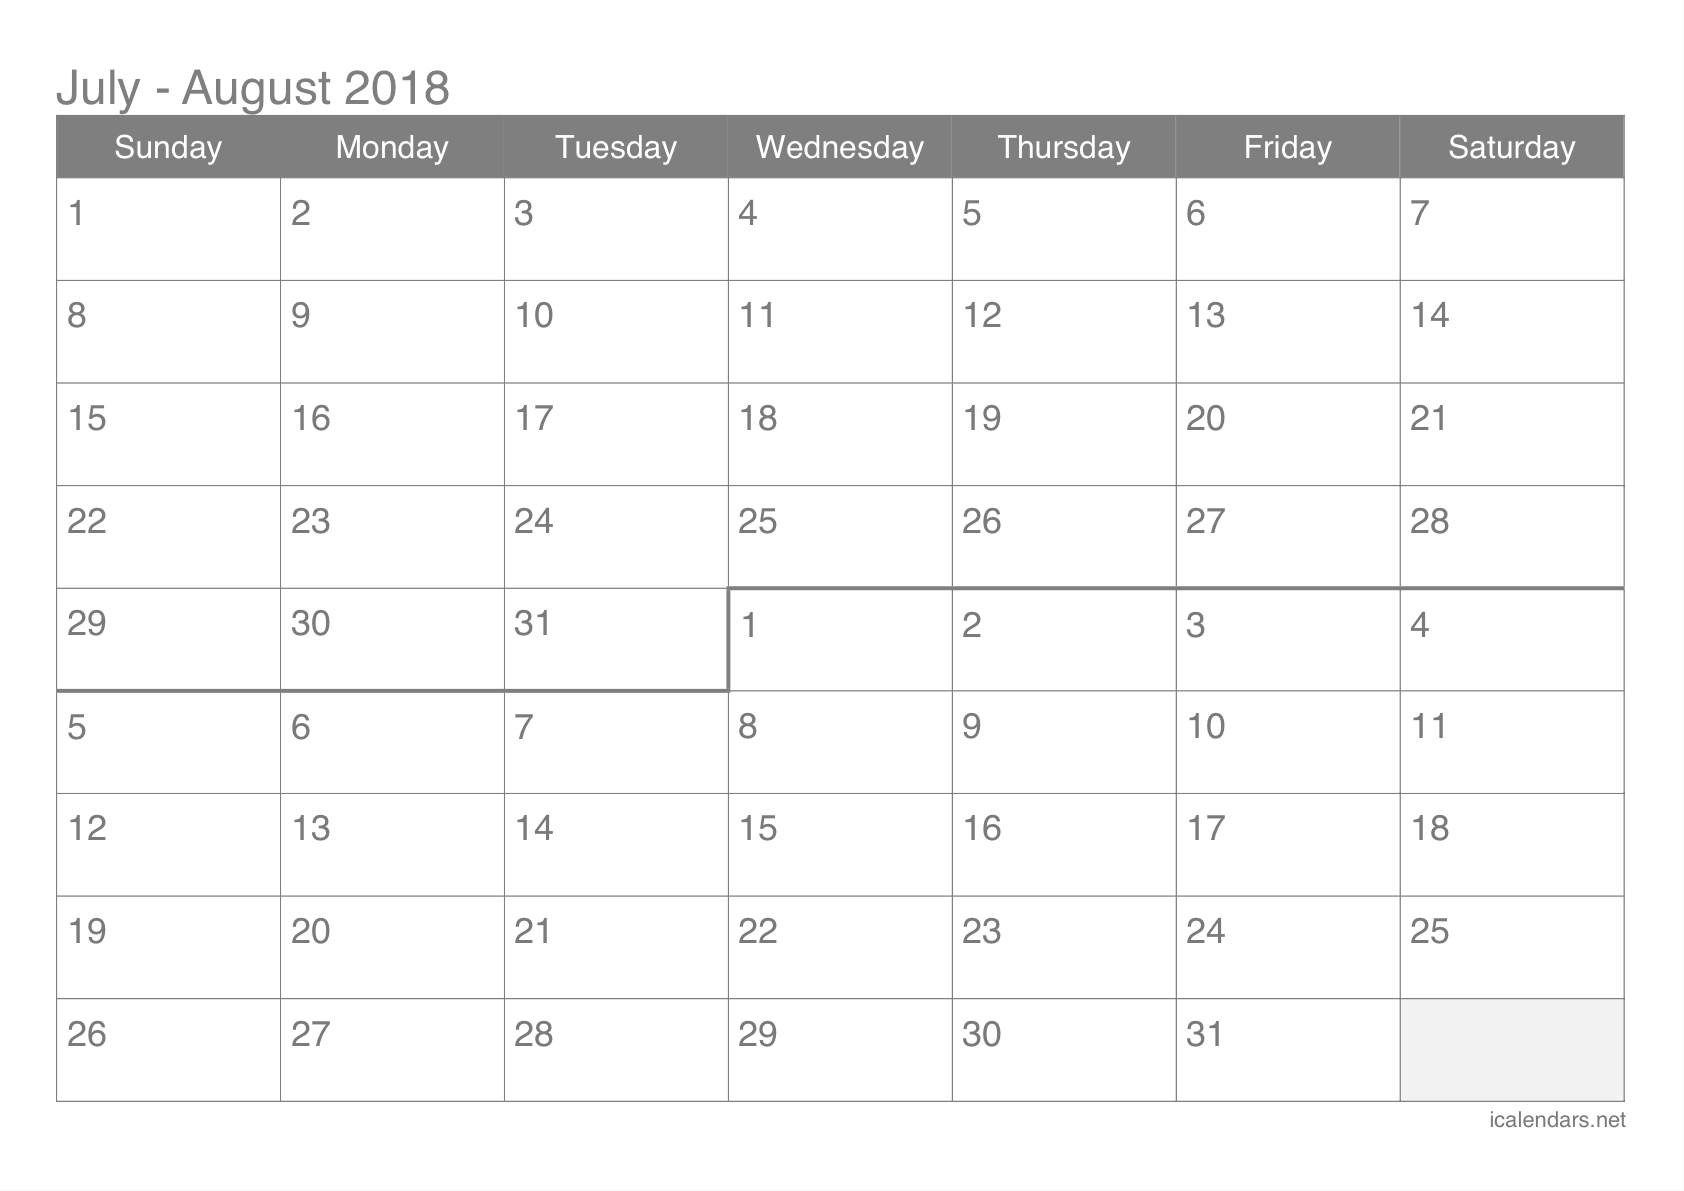 July And August 2018 Printable Calendar - Icalendars  Printable July Through August Calendars